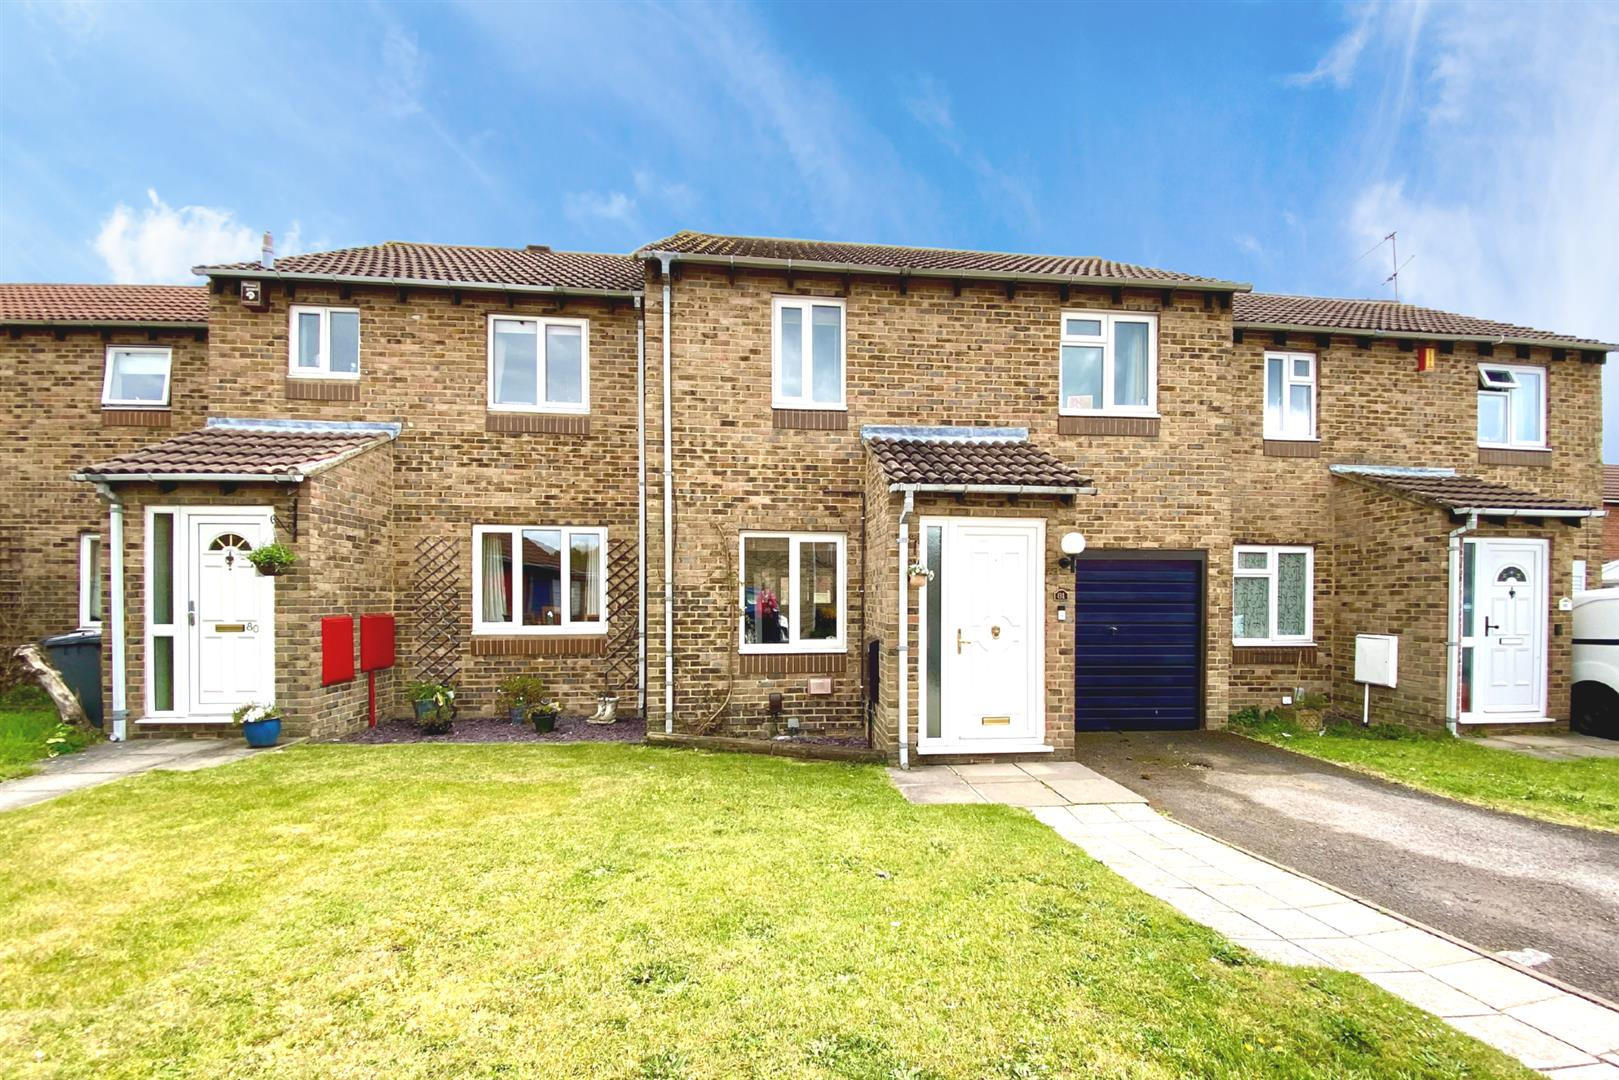 3 bed terraced for sale in Lower Earley, RG6